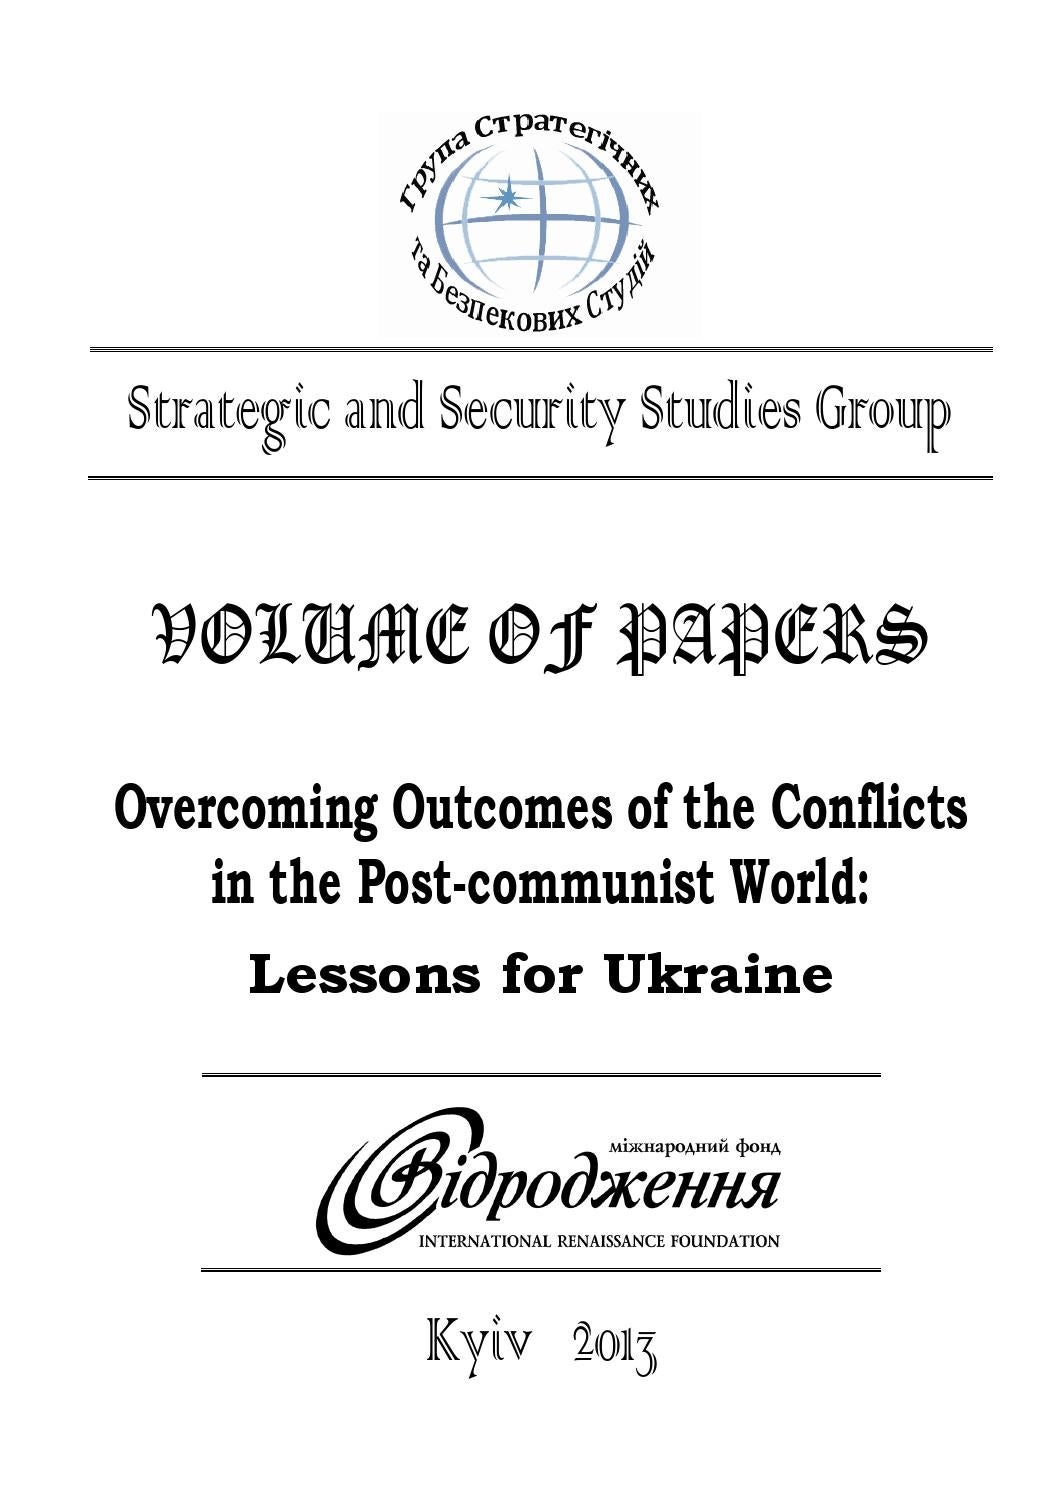 Overcoming Outcomes of the Conflicts in the Post-communist